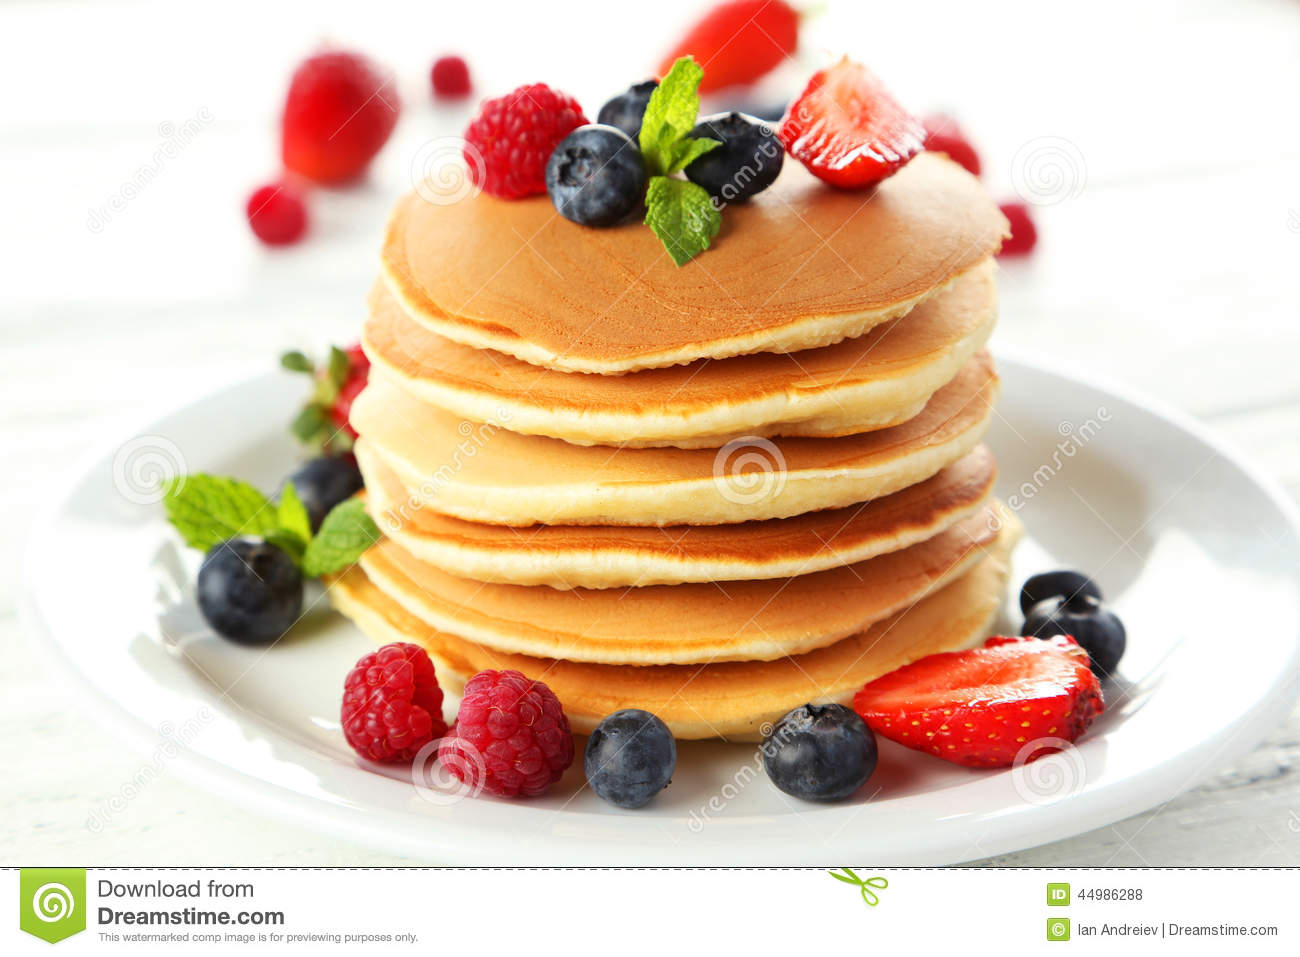 Delicious Pancakes With Berries On A White Wooden